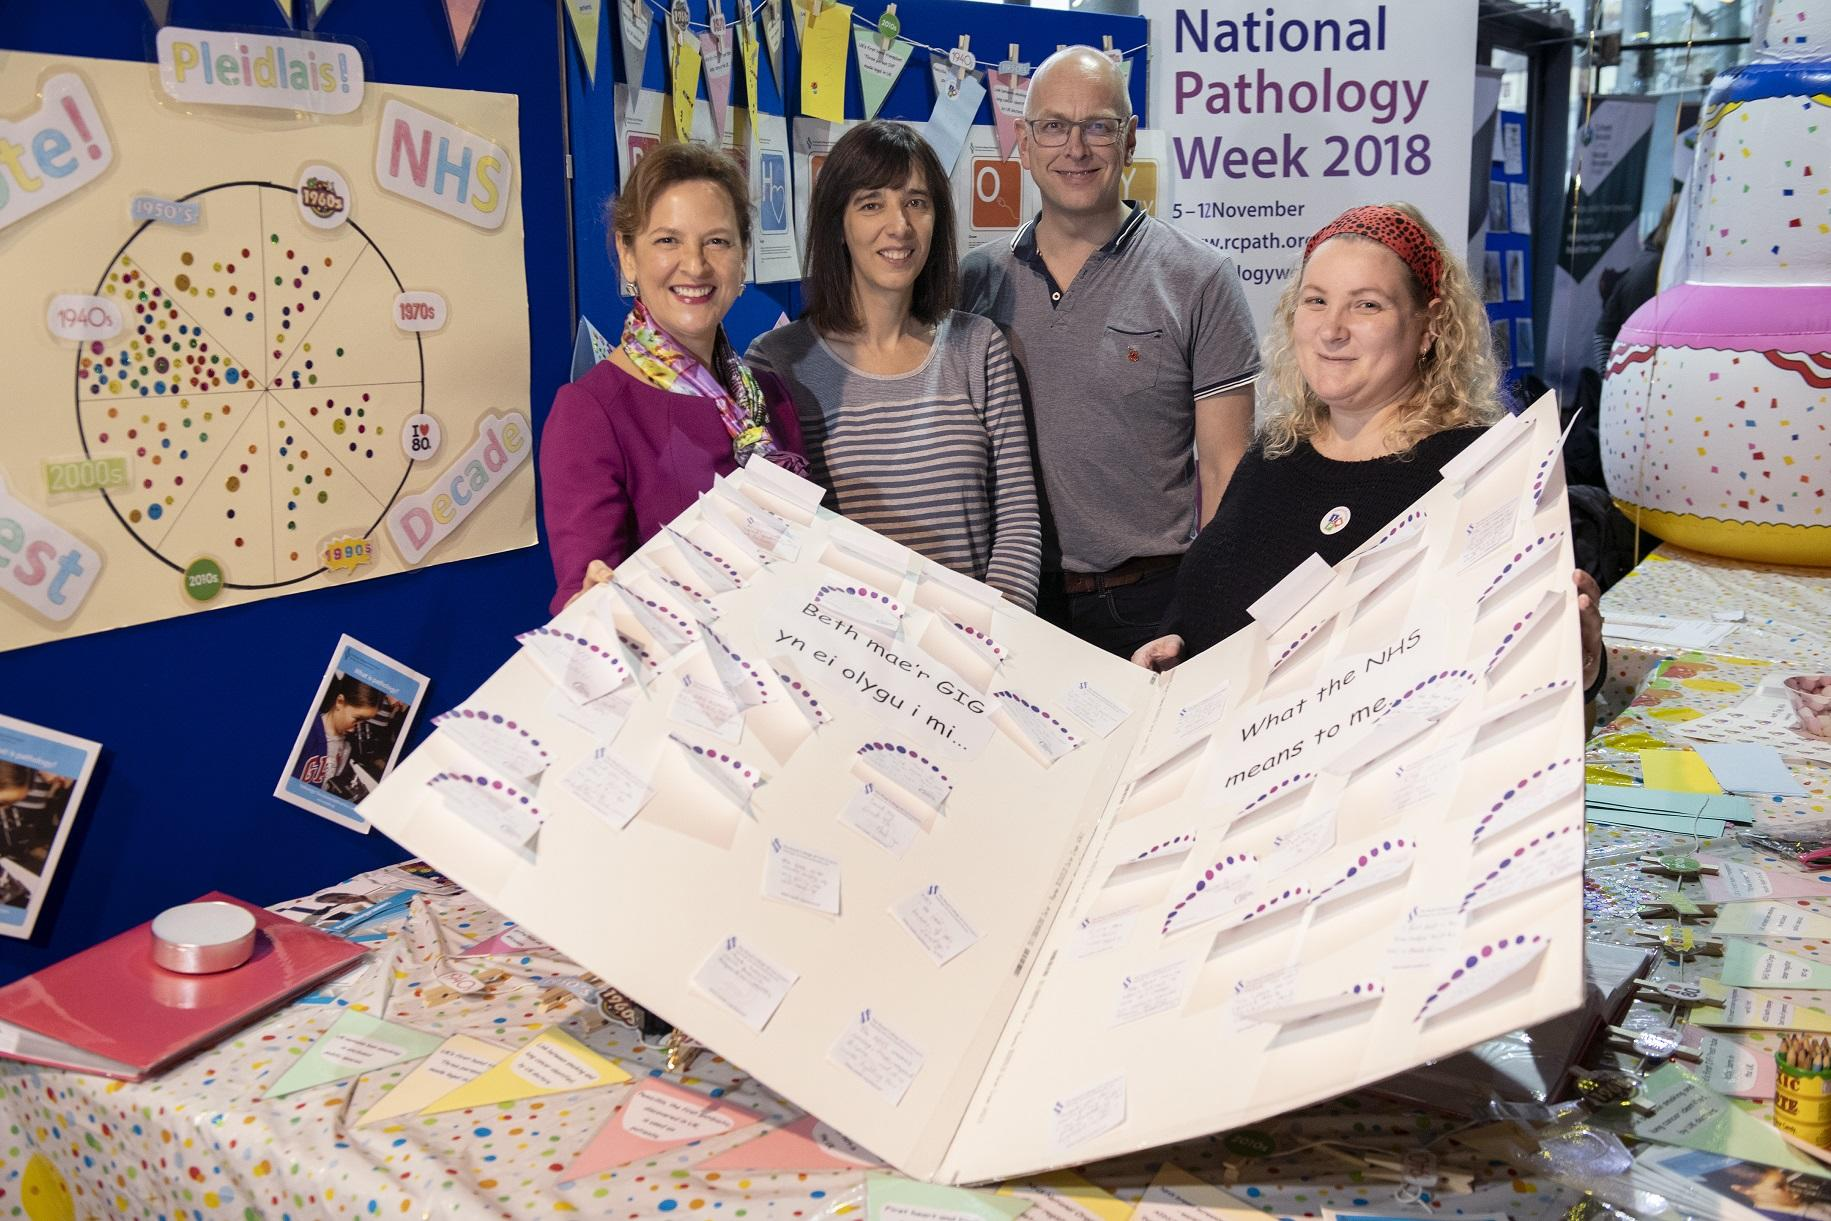 The giant 70th birthday card with thank you messages to the NHS